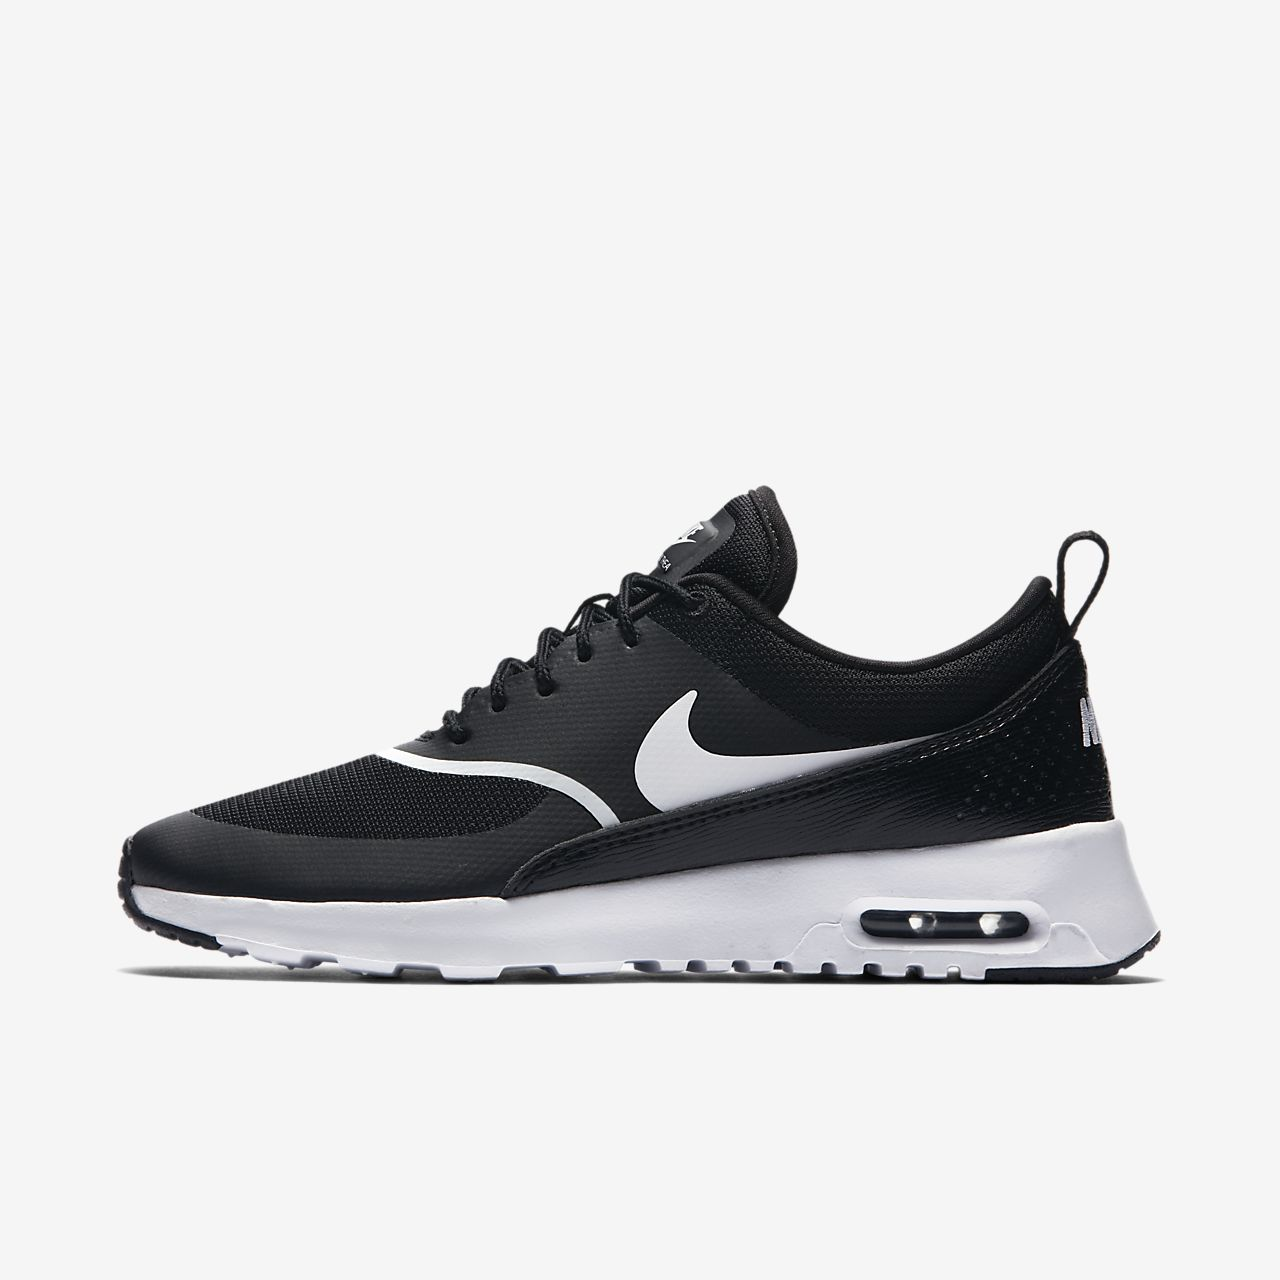 sports shoes a3220 a8052 ... Nike Air Max Thea Womens Shoe